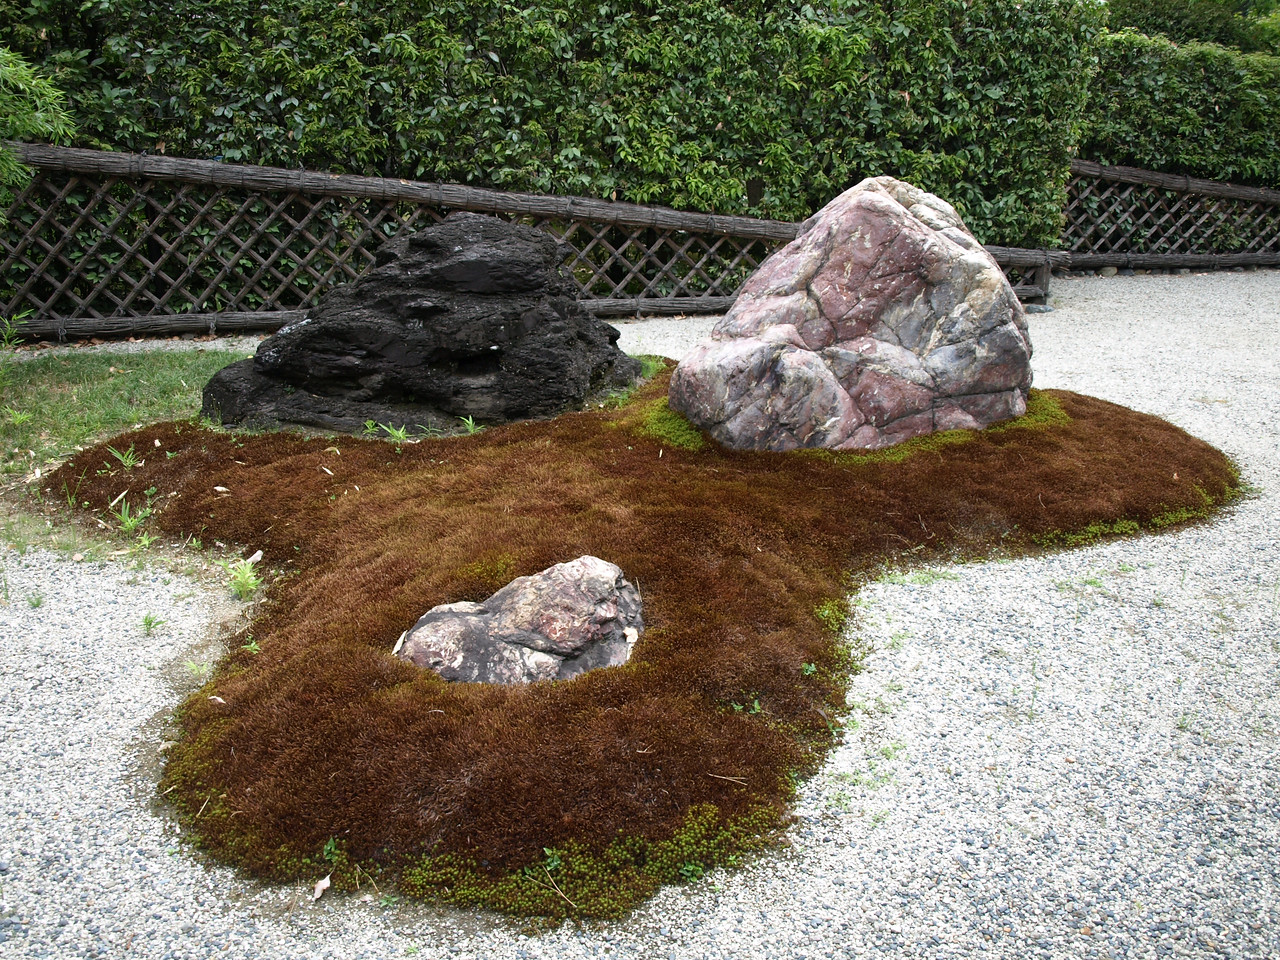 A closer view of one element of the rock garden